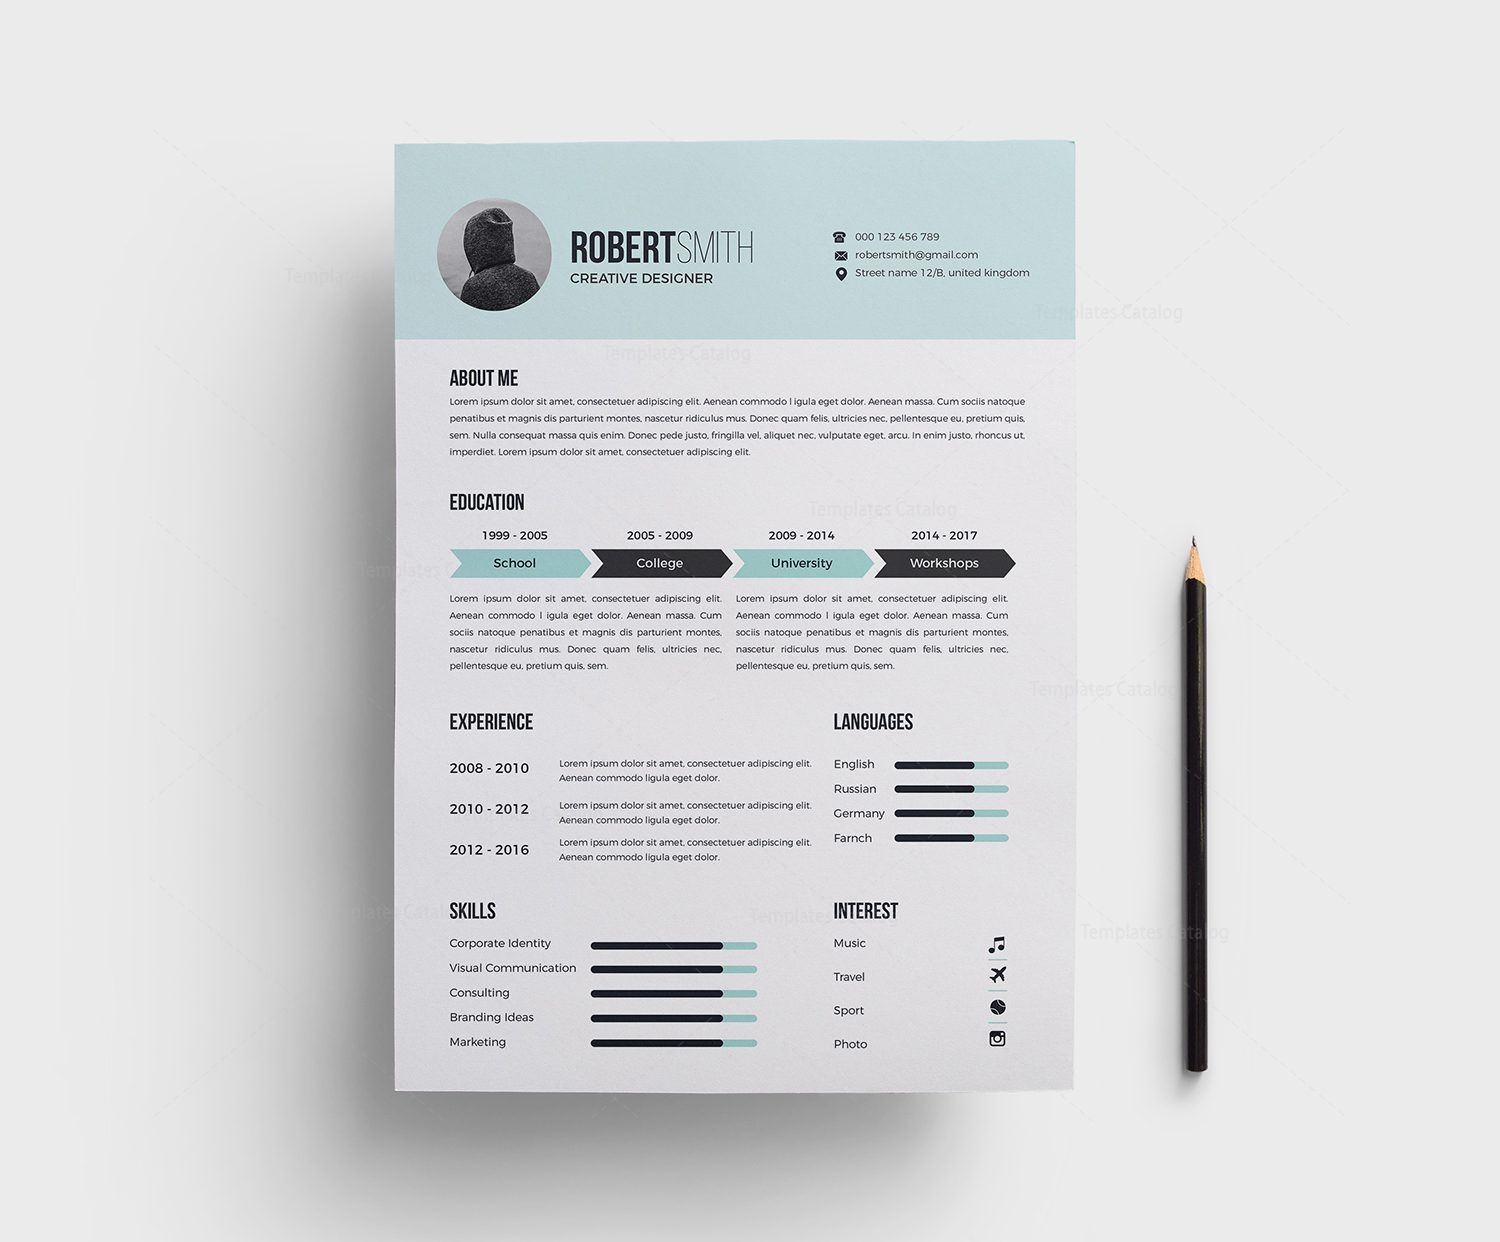 Classy Light Blue Resume Template - Resume design template, Resume templates, Resume template, Resume design creative, Templates, Resume cv - Classy Light Blue Resume Template  The perfect way to make the best impression  Strong typographic structure and very easy to use and customize    The resume have a very org